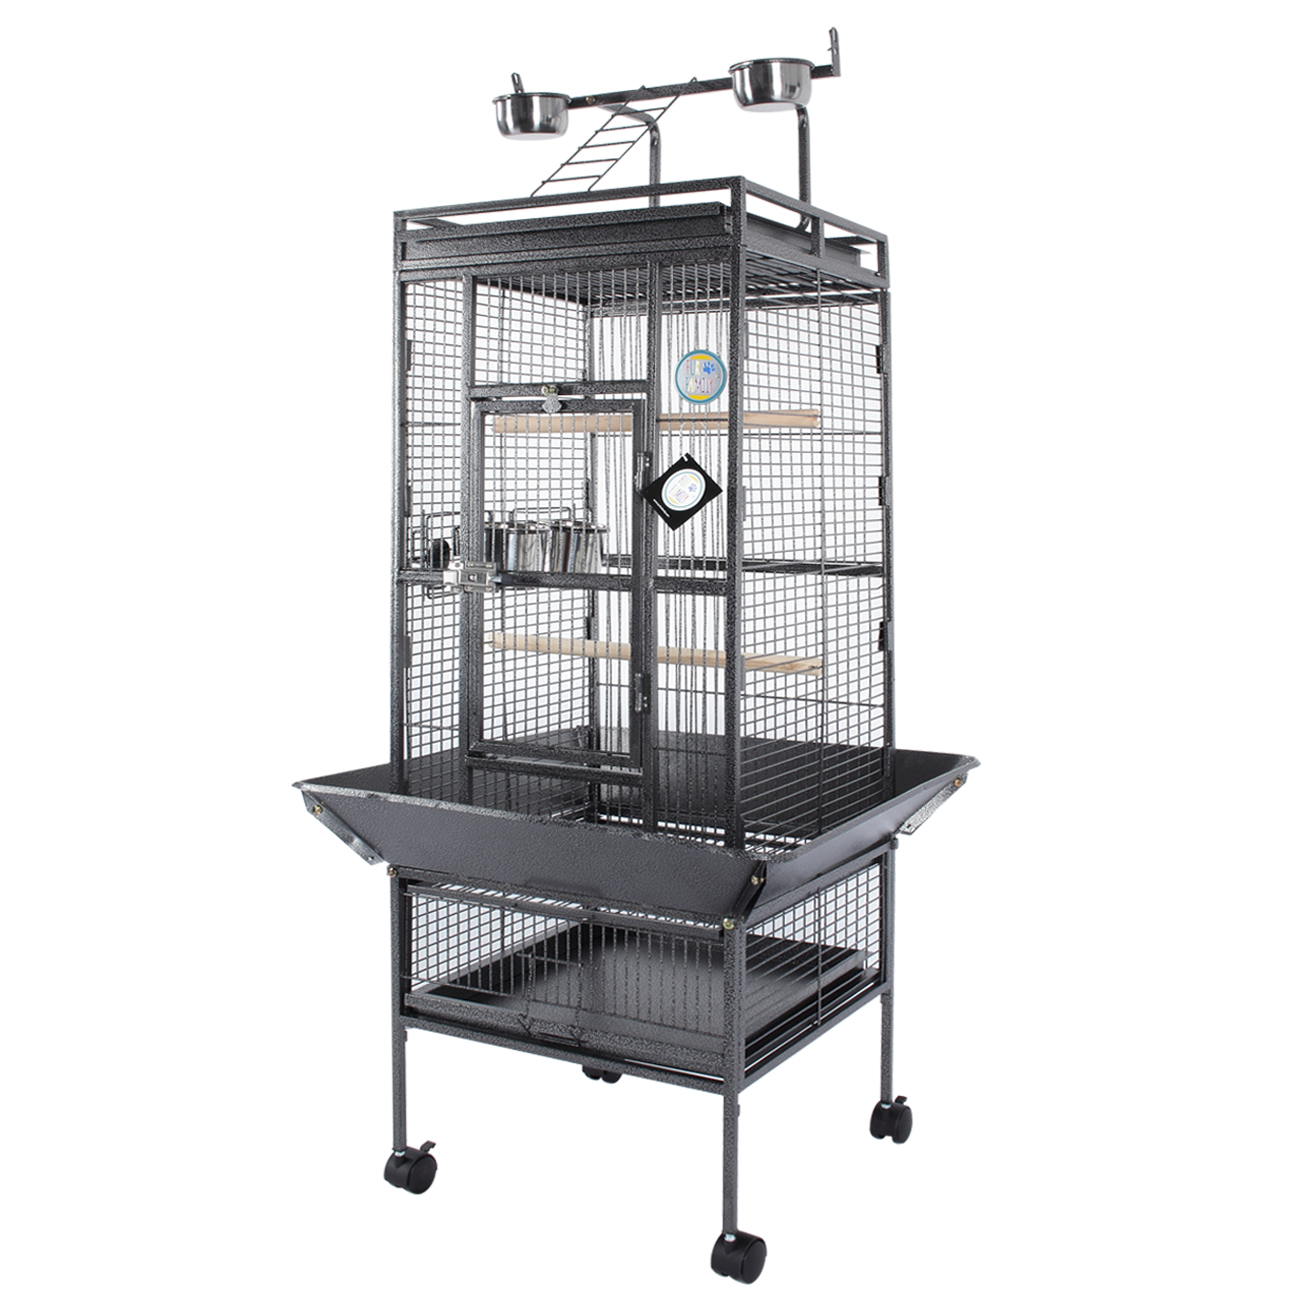 Fur Family Deluxe Bird Cage Large w  Wheel Play Top Parrot Finch Perch Cage Macaw Cockatoo by Fur Family